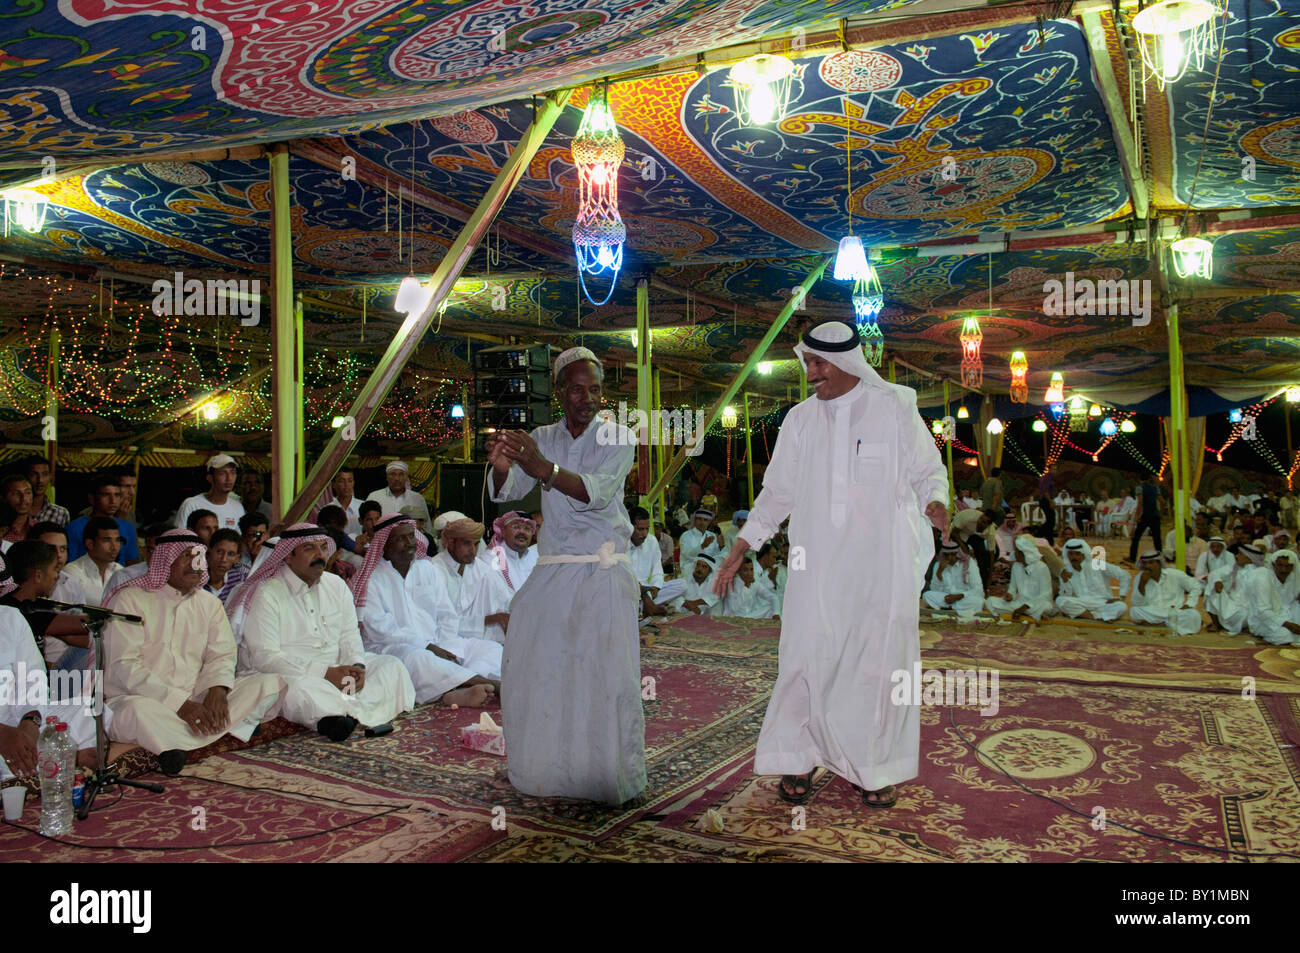 Guests celebrate with dance as other guests look on during a traditional Bedouin wedding celebration. El Tur, Sinai, - Stock Image